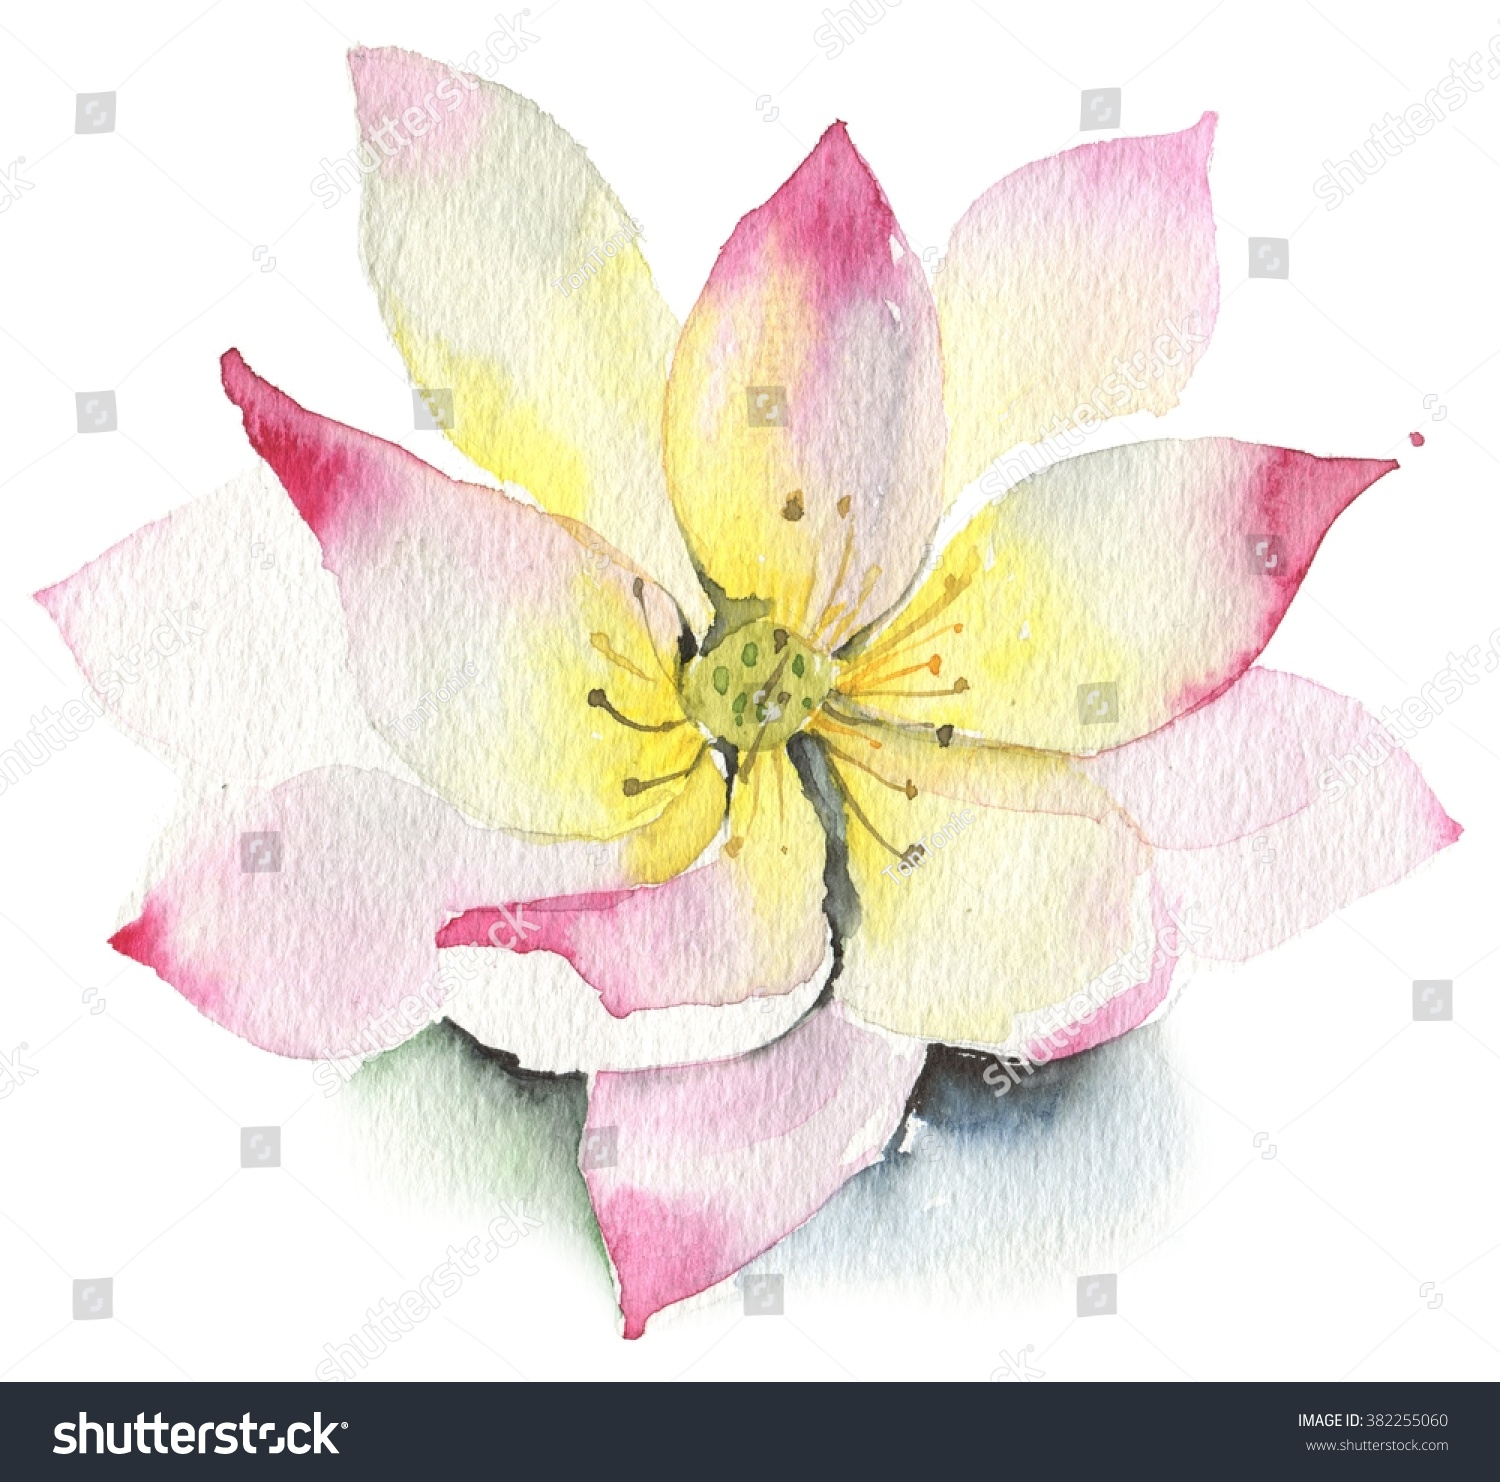 Yoga pattern background seamless pattern with five petals lotus flower - Lilies And Lotuses On A White Background Isolated In White Lotus Watercolor Pink